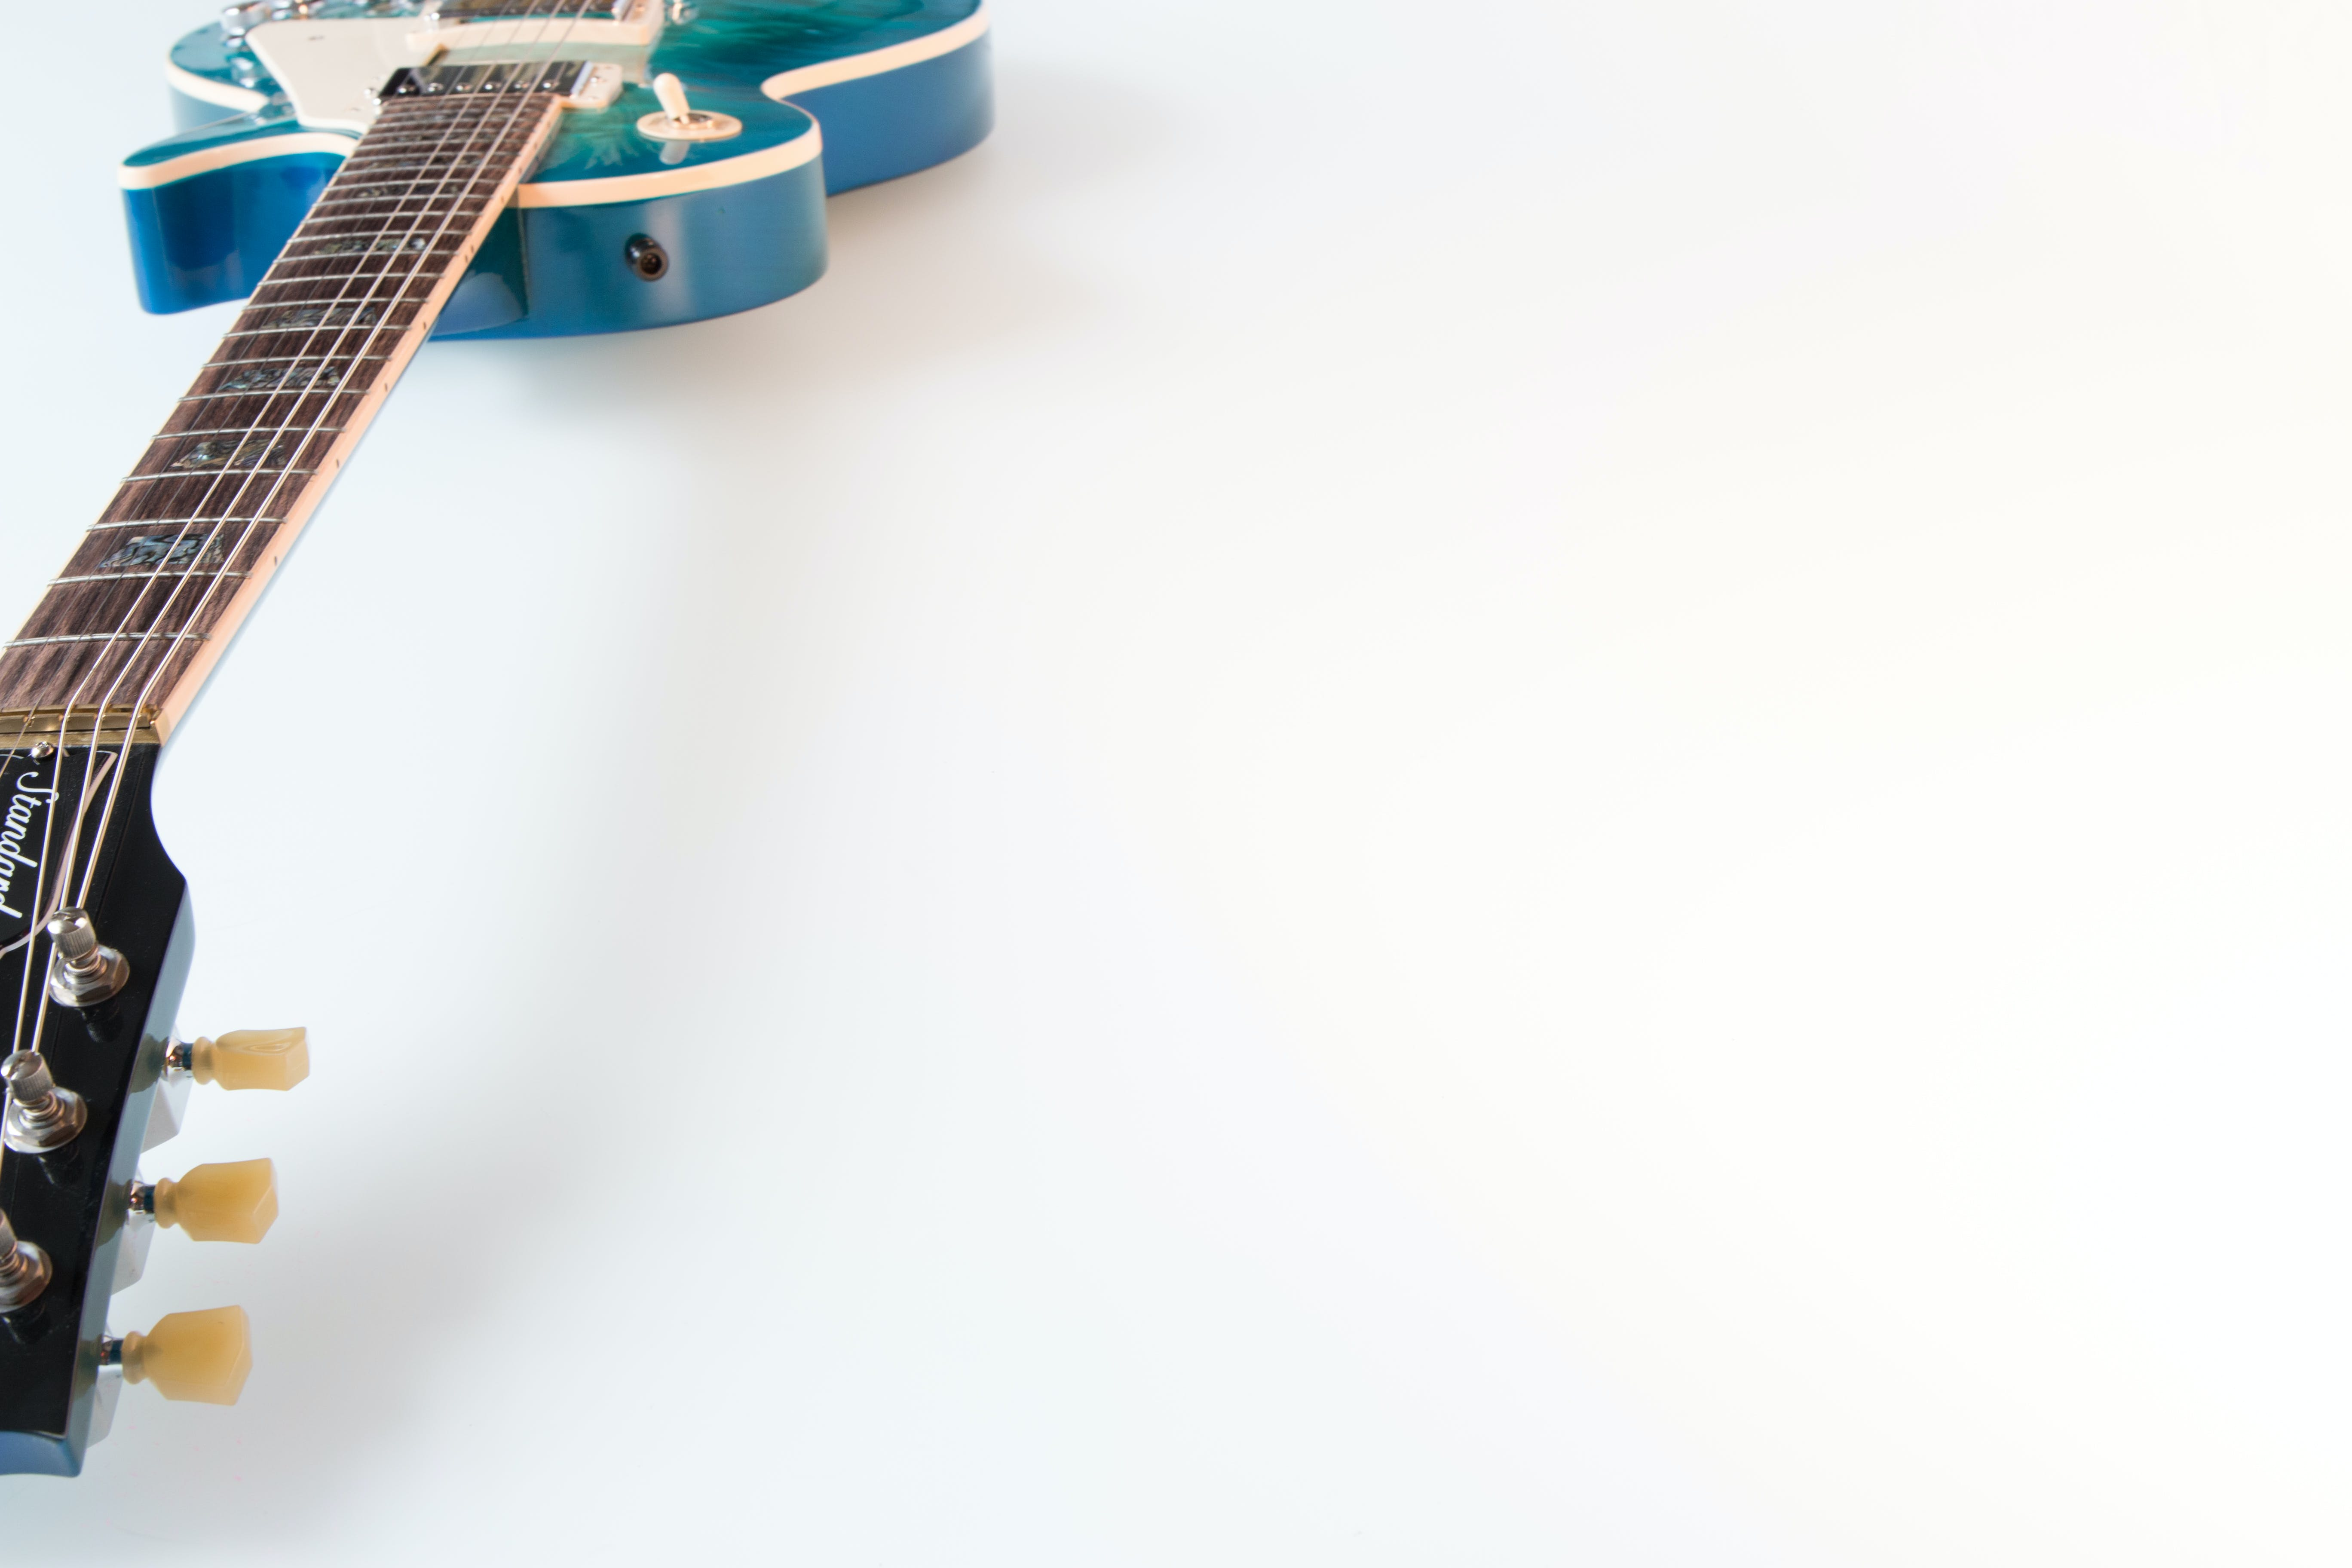 of electric guitar, gibson, guitar, isolated